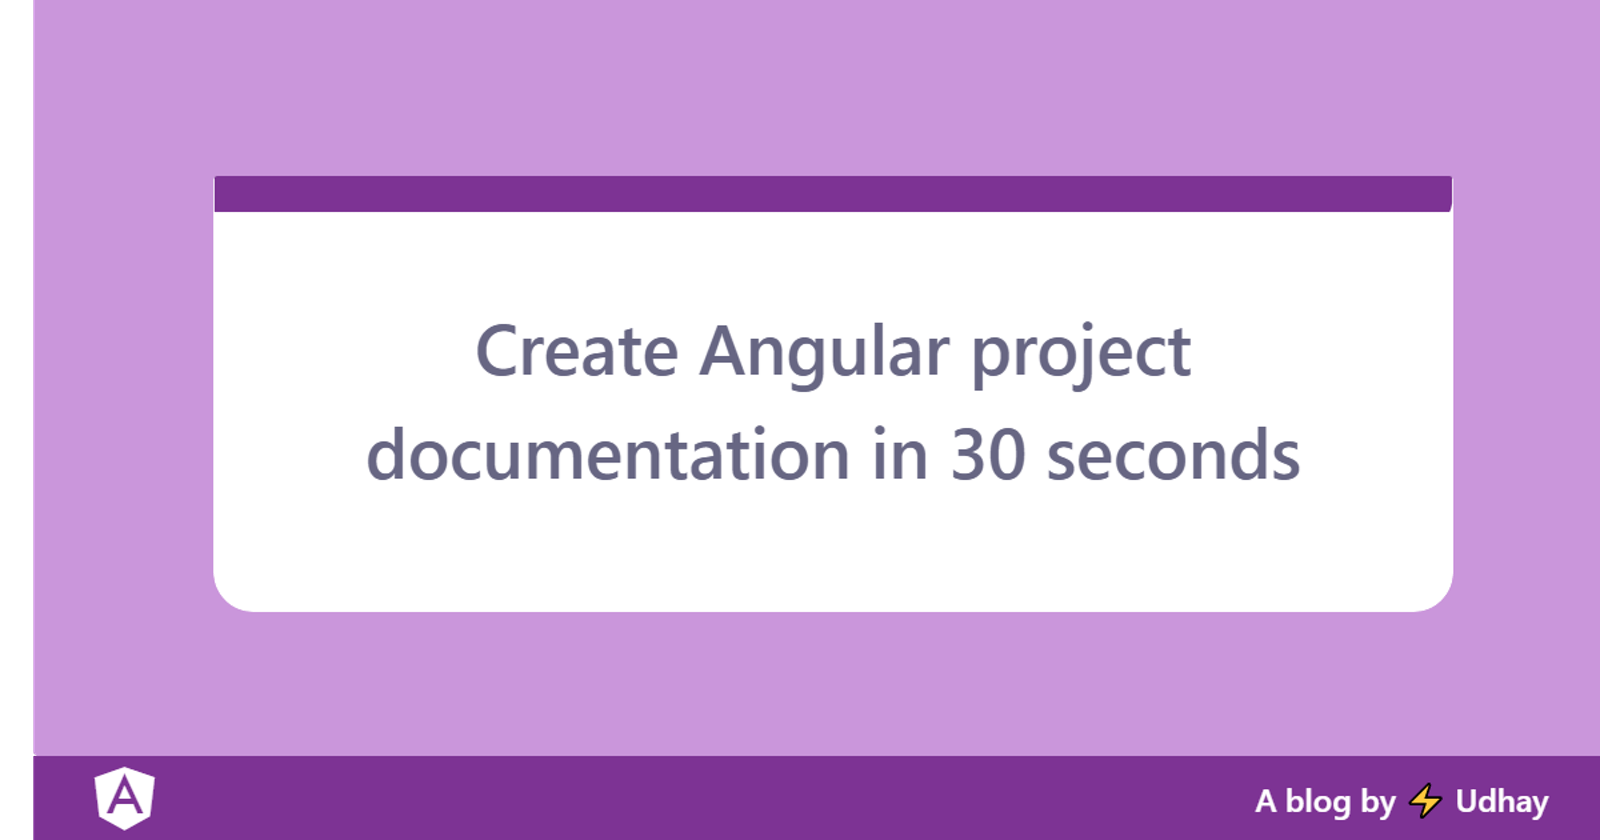 Create documentation of Angular project under 30 seconds